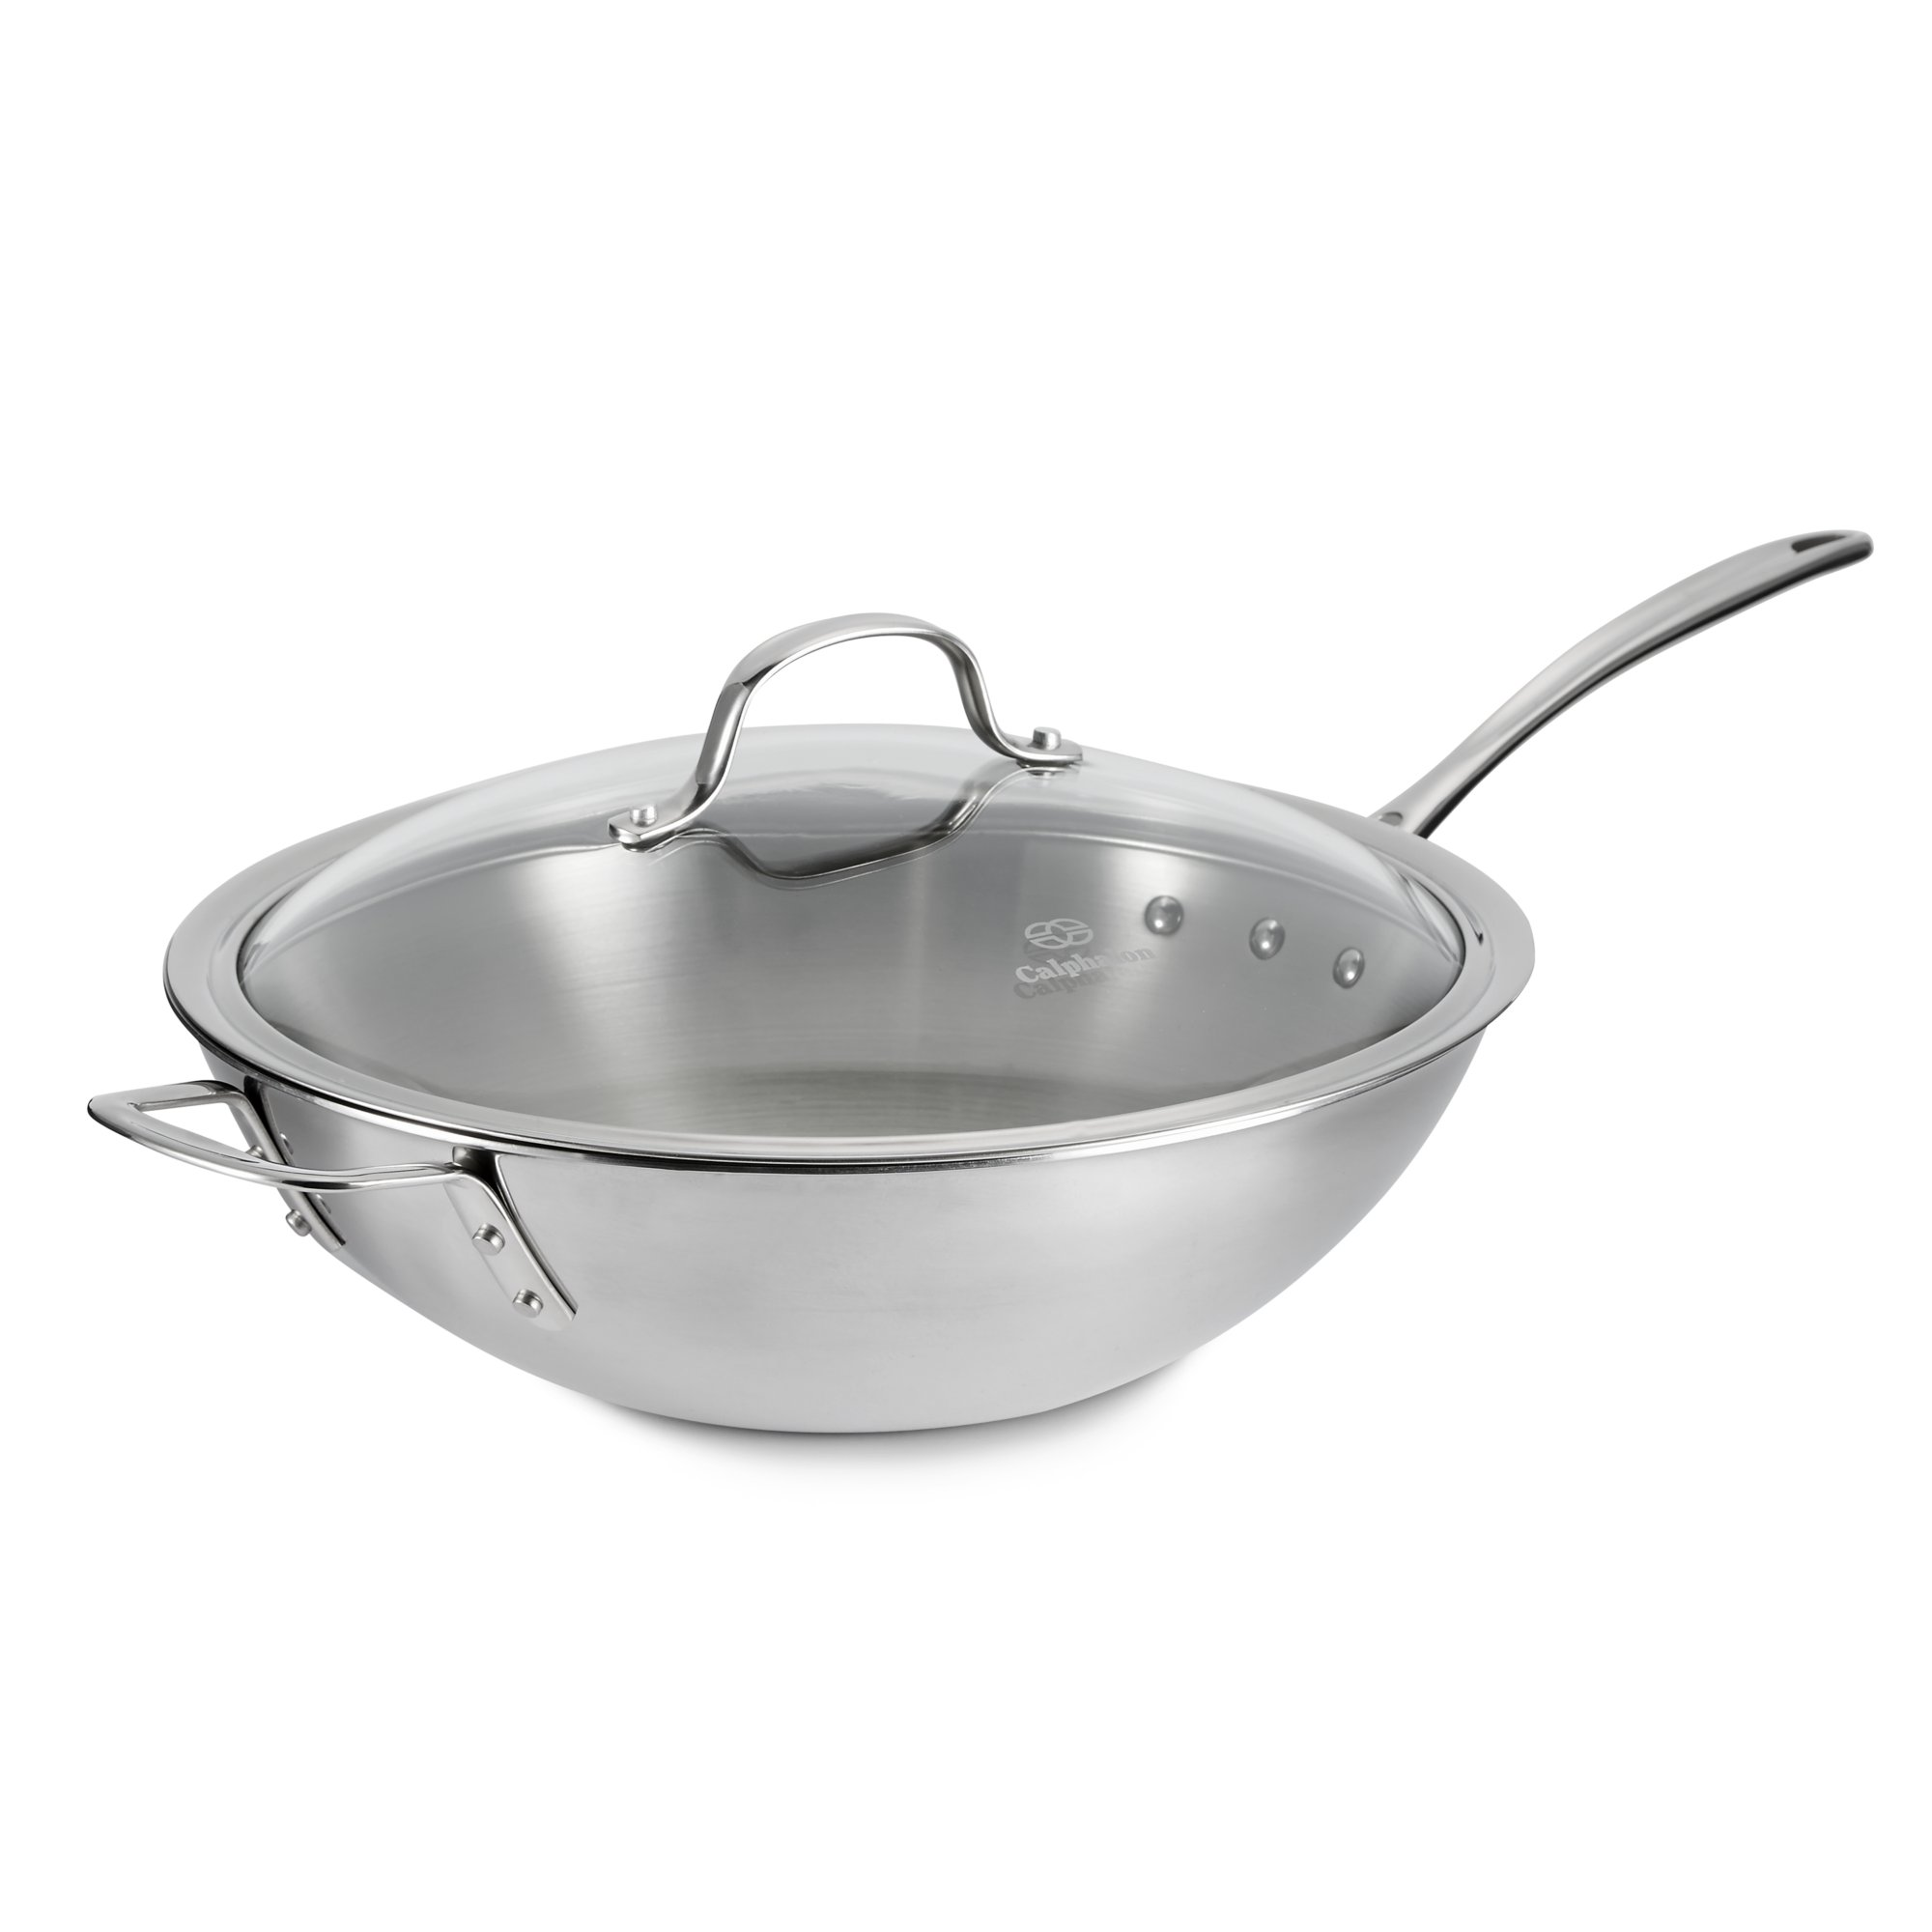 Calphalon Tri-Ply Stainless Steel 12-in. Stir Fry with Cover